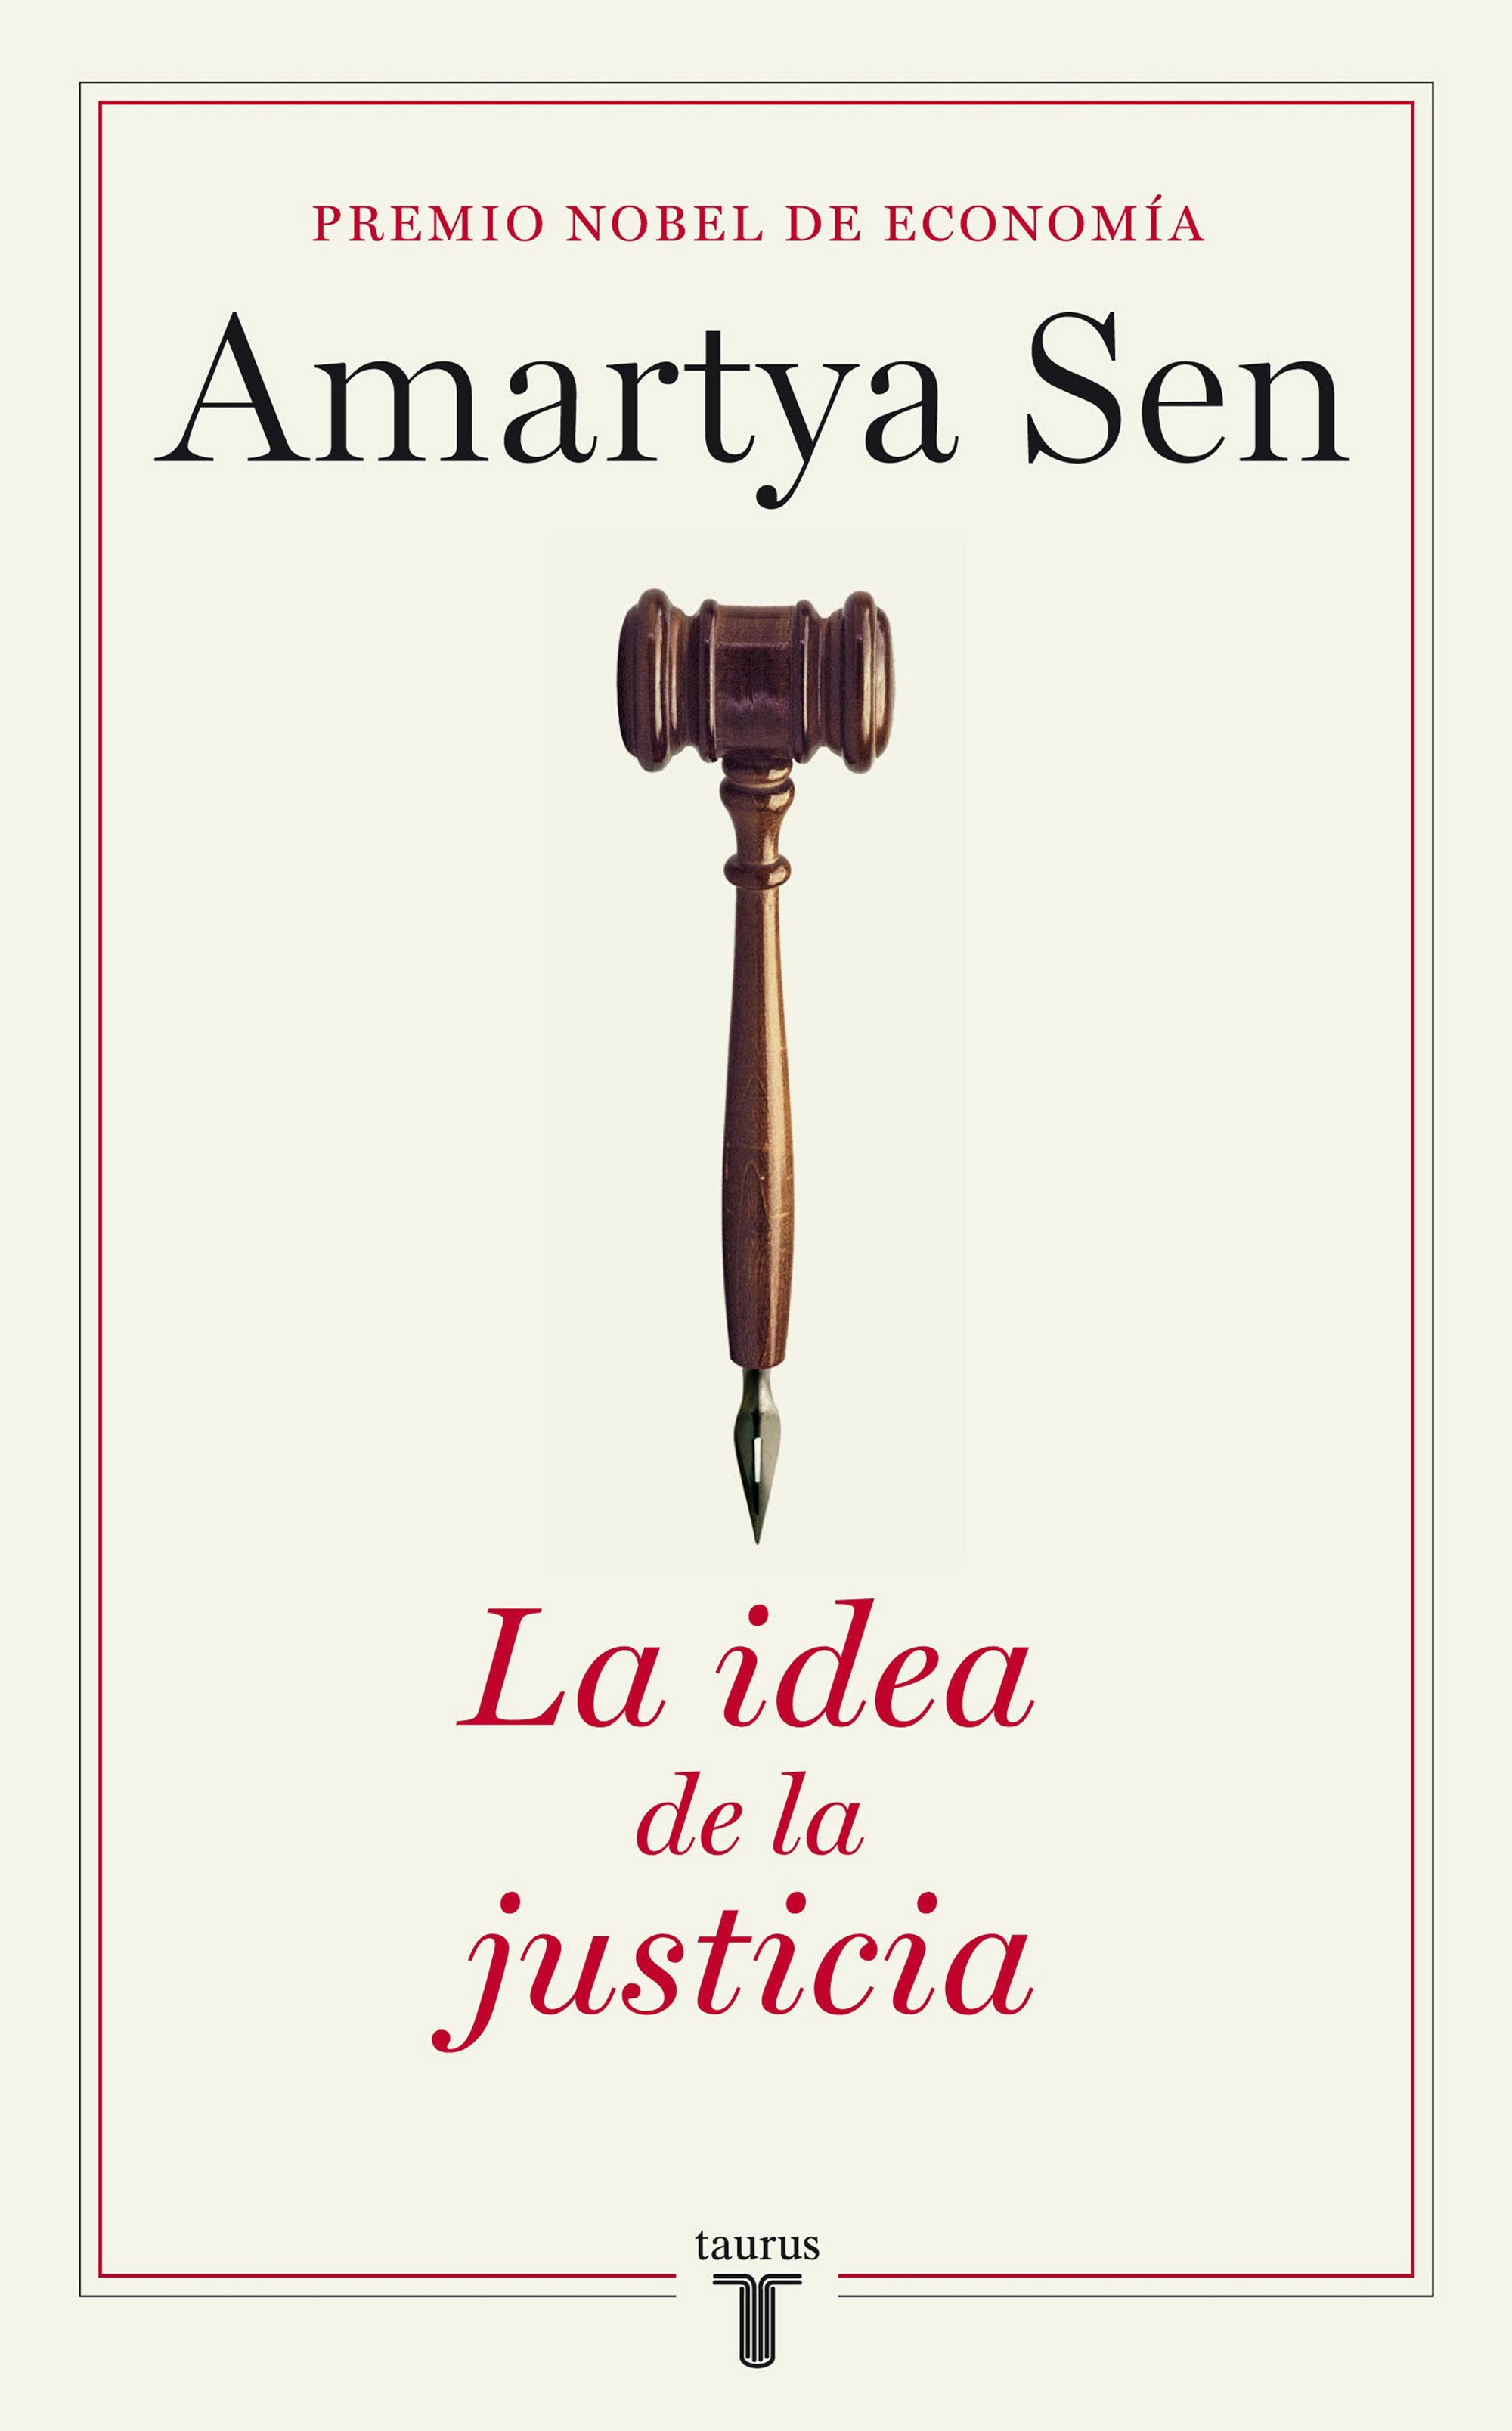 Descargar Libros Universitarios Gratis La Idea De La Justicia Ebook Amartya Sen 9788430615926